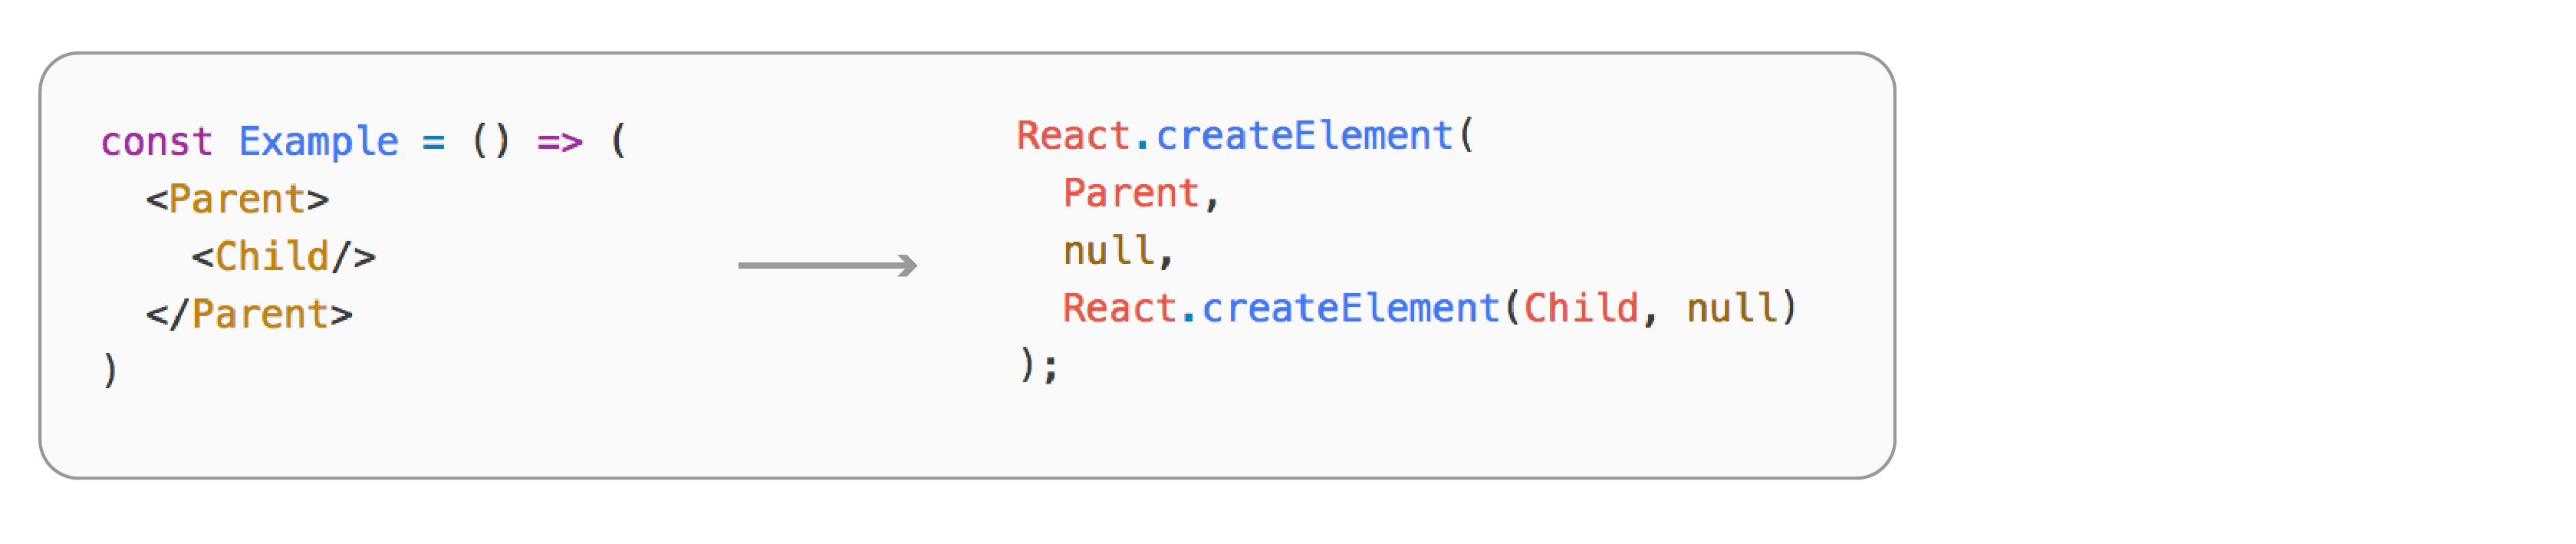 How To Master Advanced React Design Patterns — Render Props